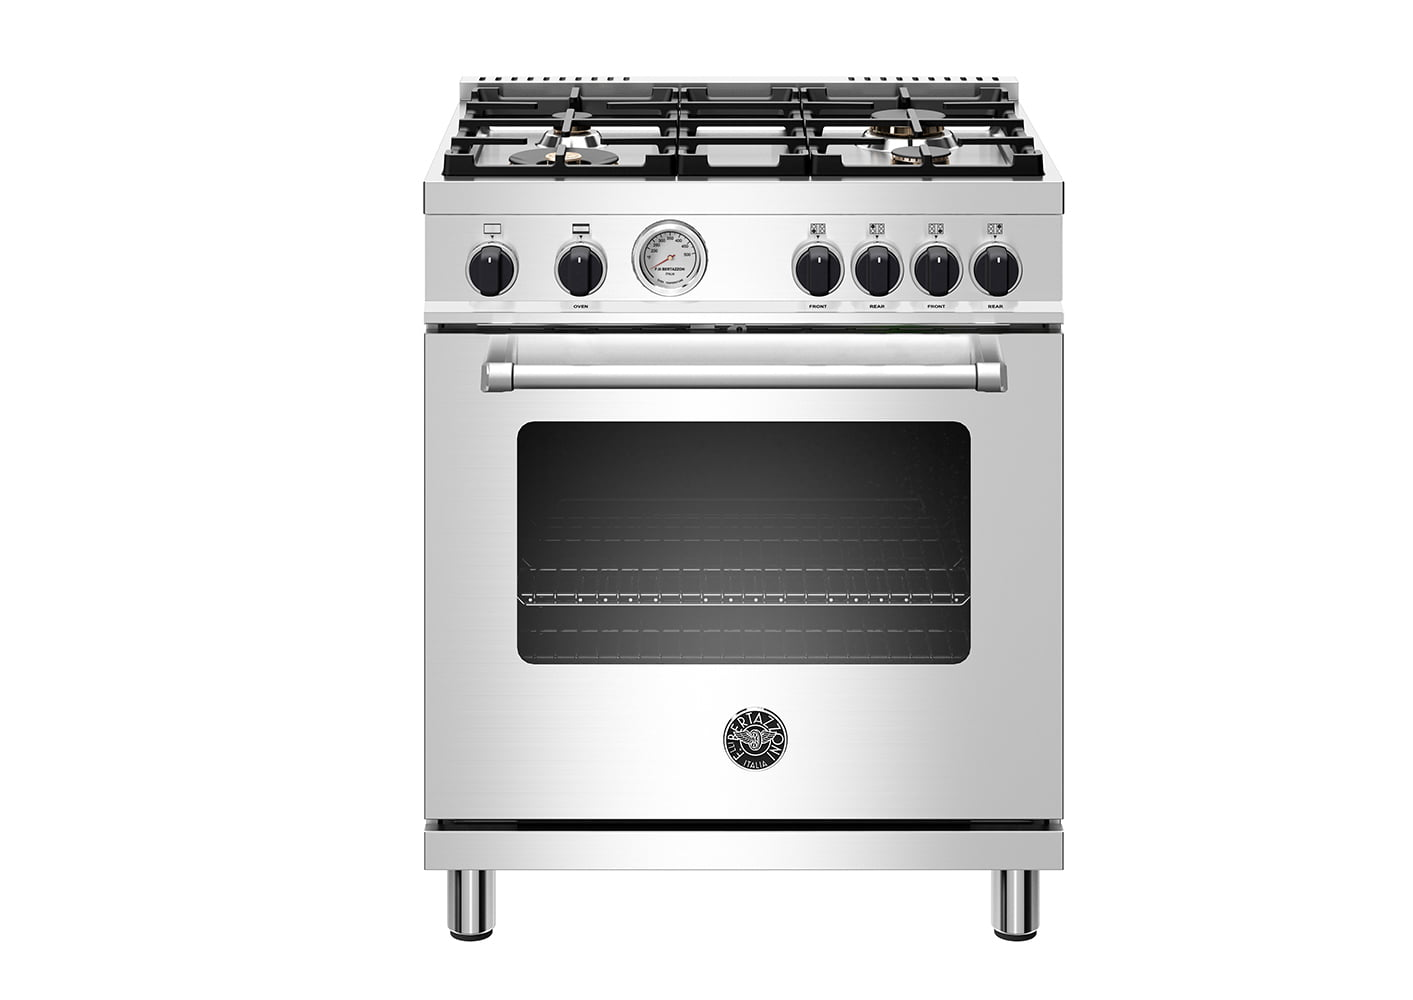 "Load image into Gallery viewer, Bertazzoni MAST304GASXVLP 30"" Master Series Range - Gas Oven - 4 Aluminum Burners - Black Knobs - Lp Version"